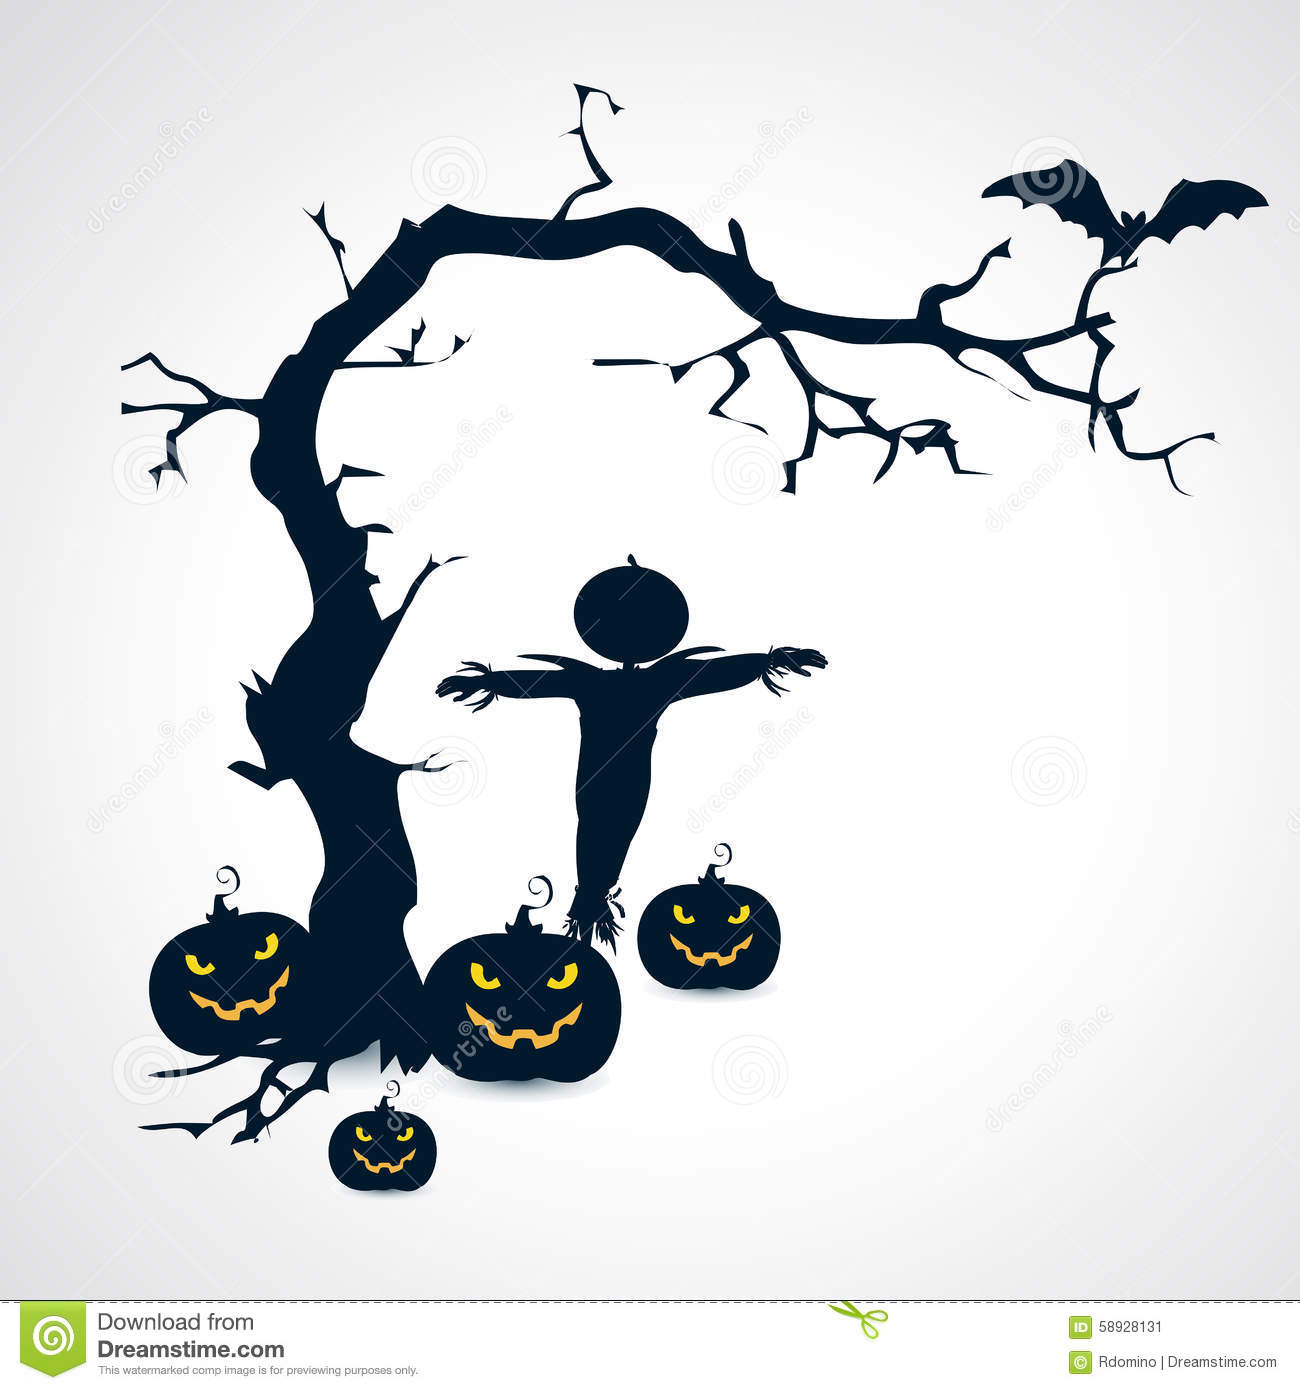 Scarecrow with tree clipart jpg transparent download Silhouettes Of Scarecrow, Pumpkins, Bat And Tree Halloween Symbol ... jpg transparent download